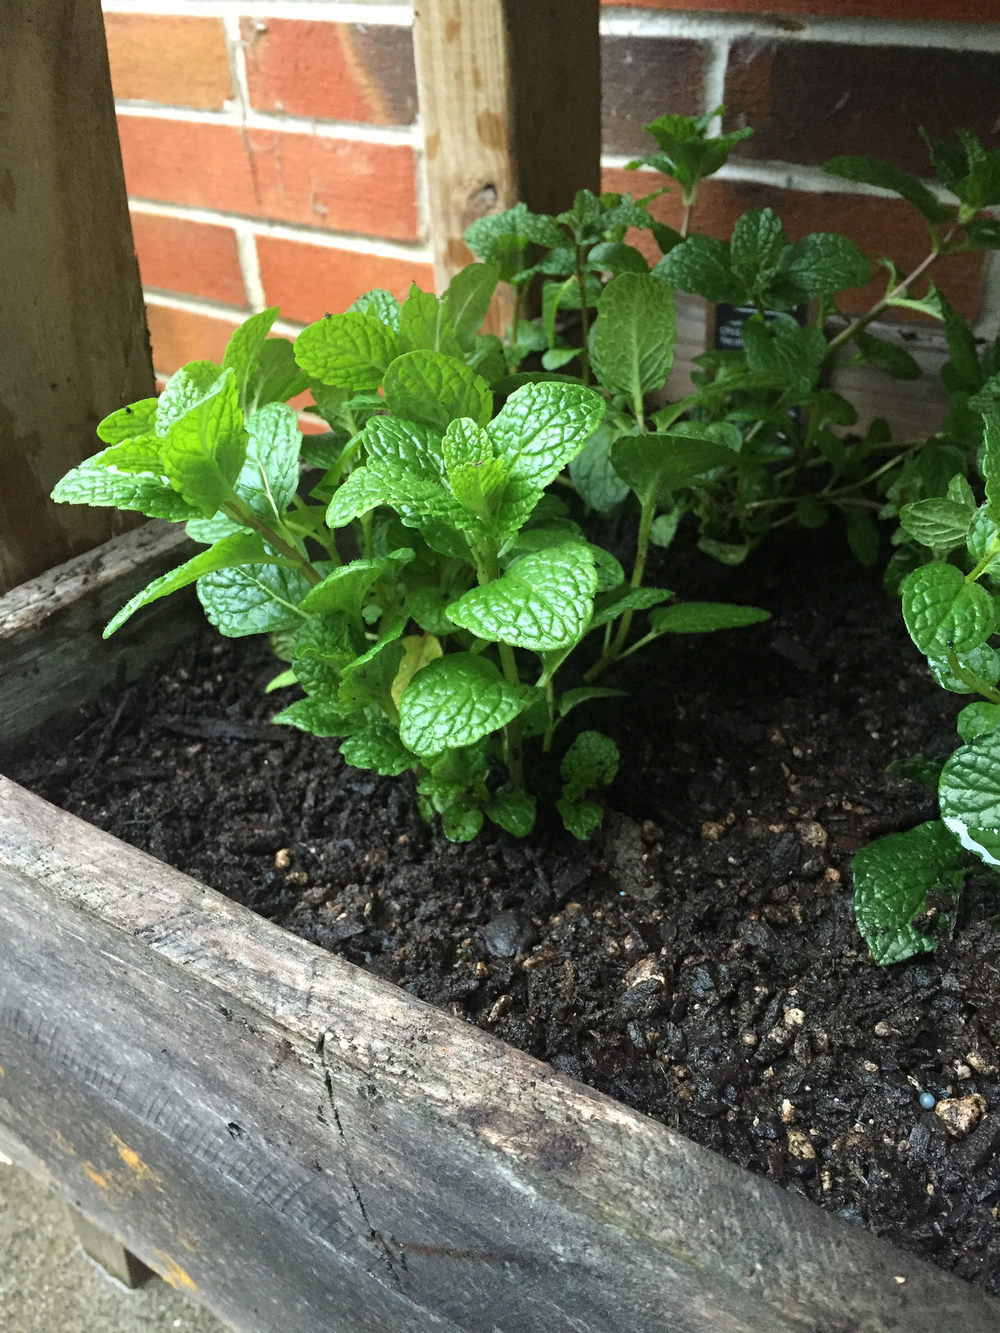 #augustBreak2016 In love with my new herb garden #mint